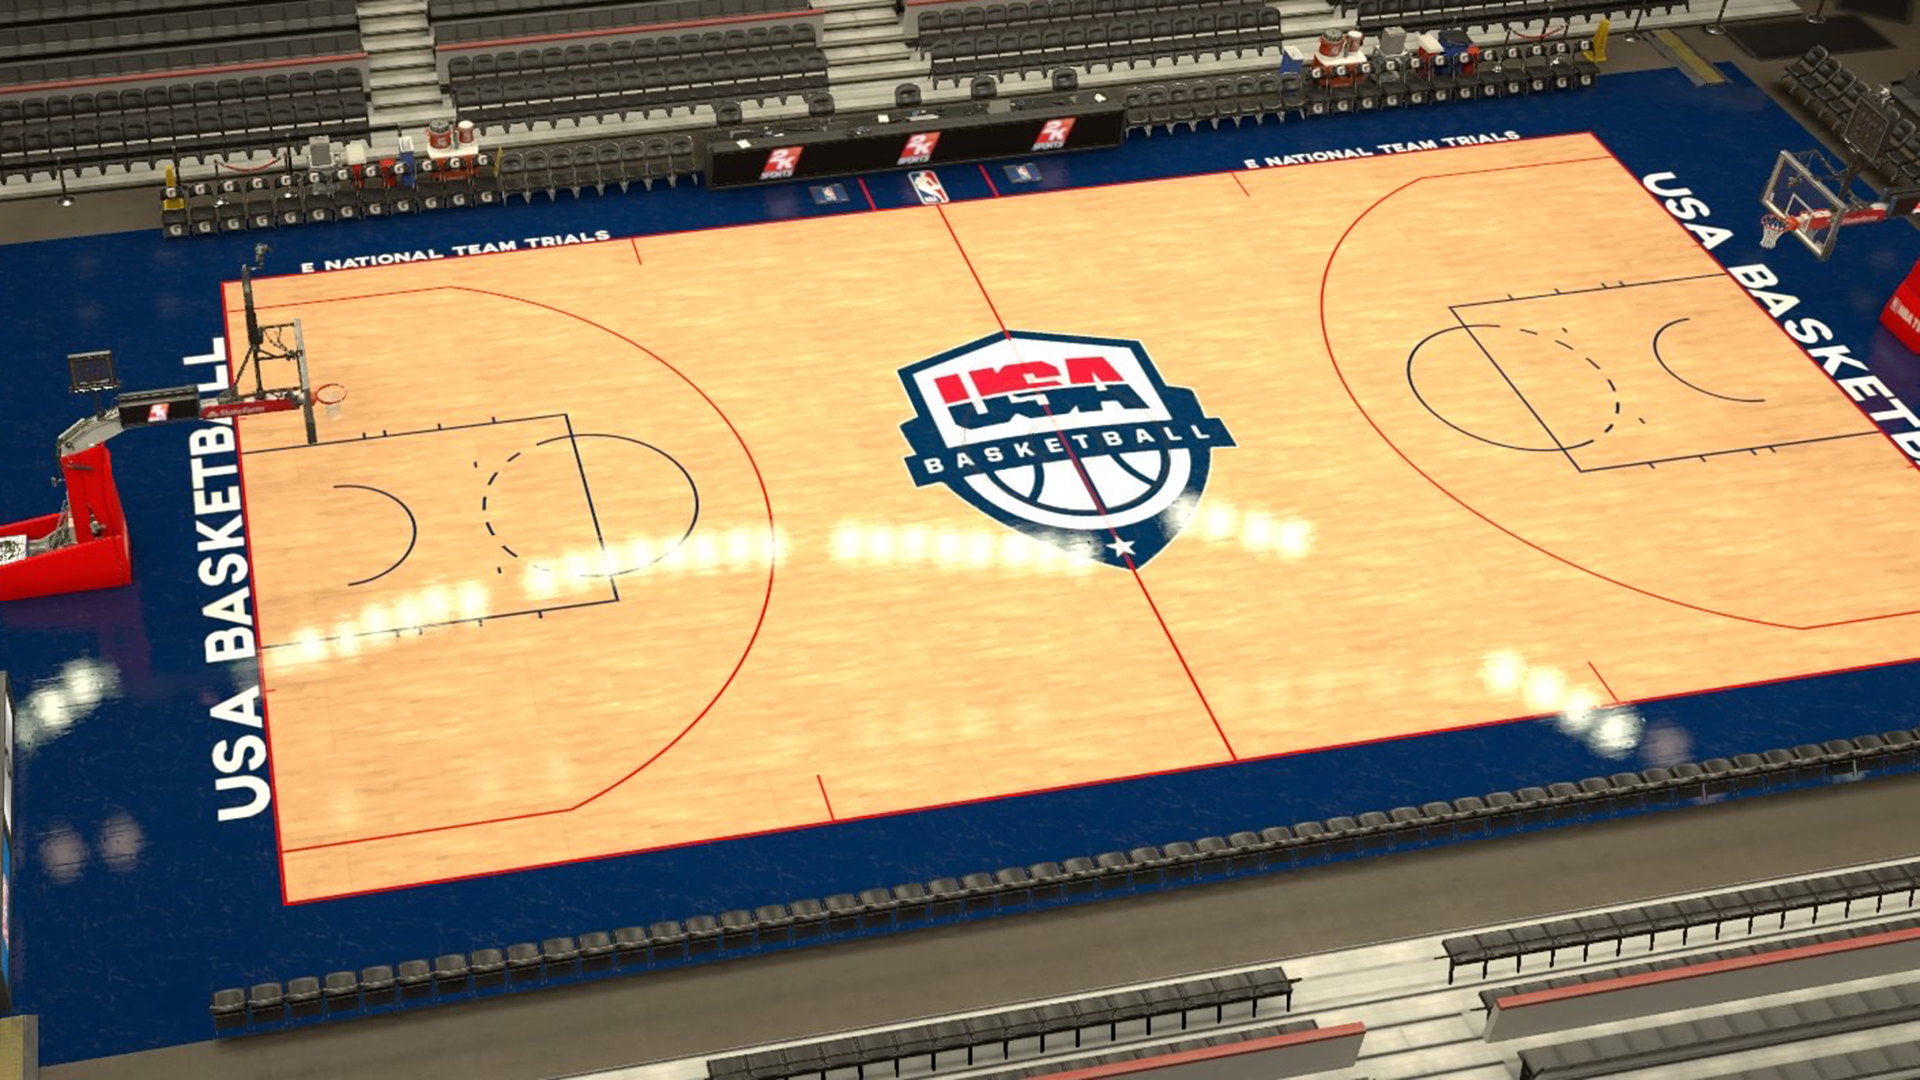 USA Basketball E-National Team trials court